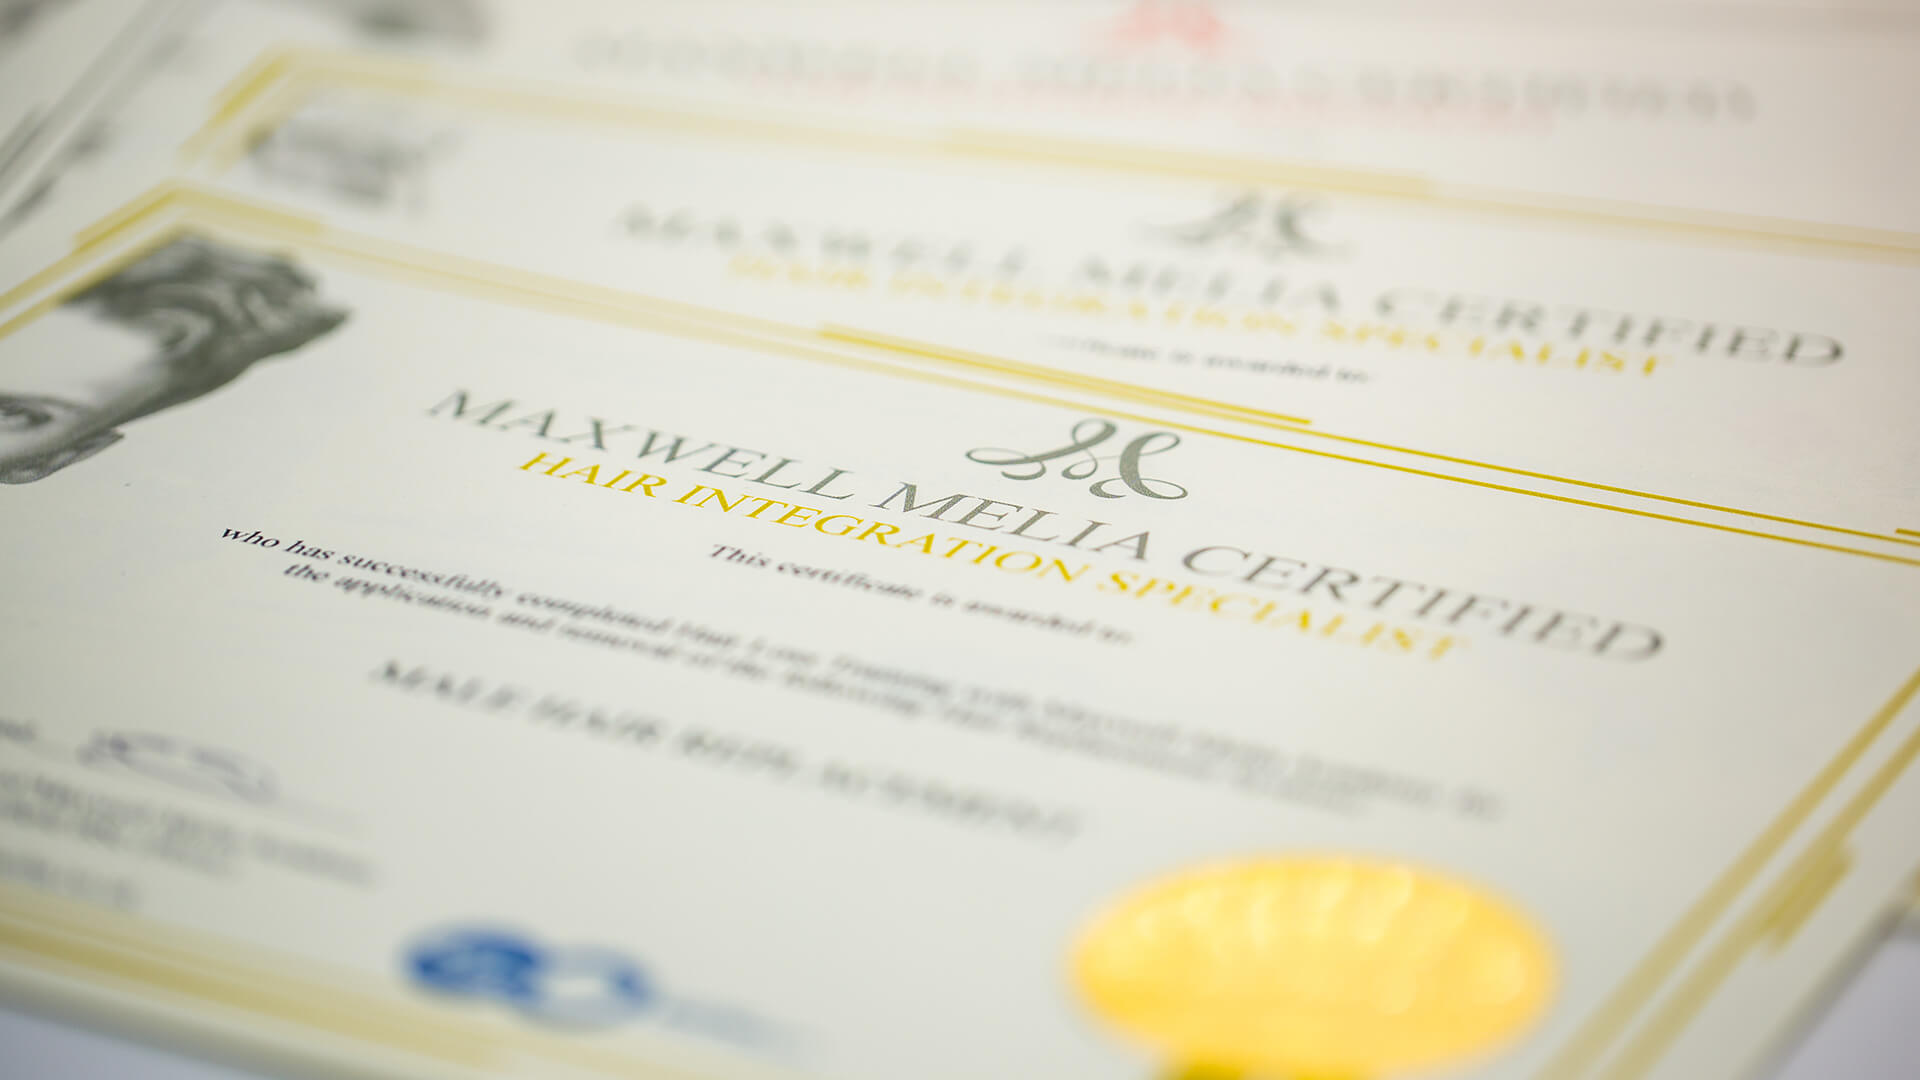 Hair Extension Qualification Training Course Certificates